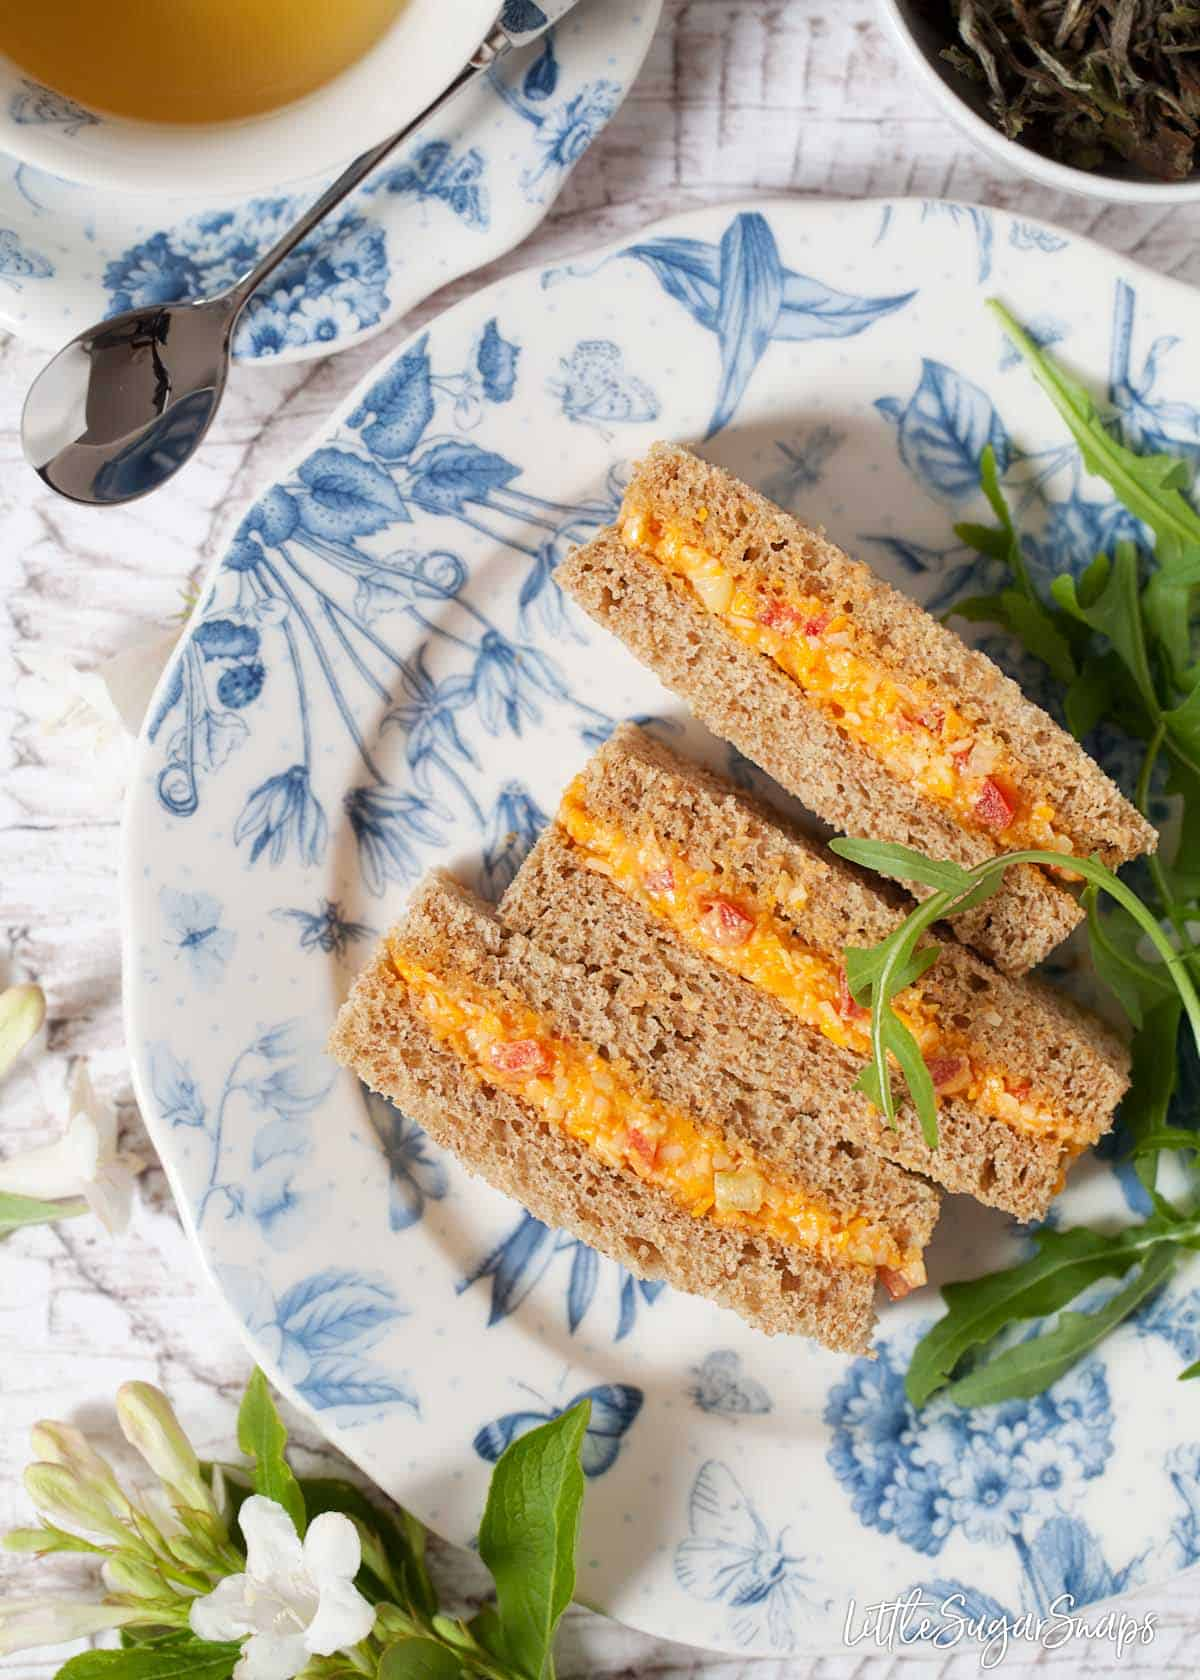 Three cheese savoury sandwiches are sitting on a pretty blue and white plate.